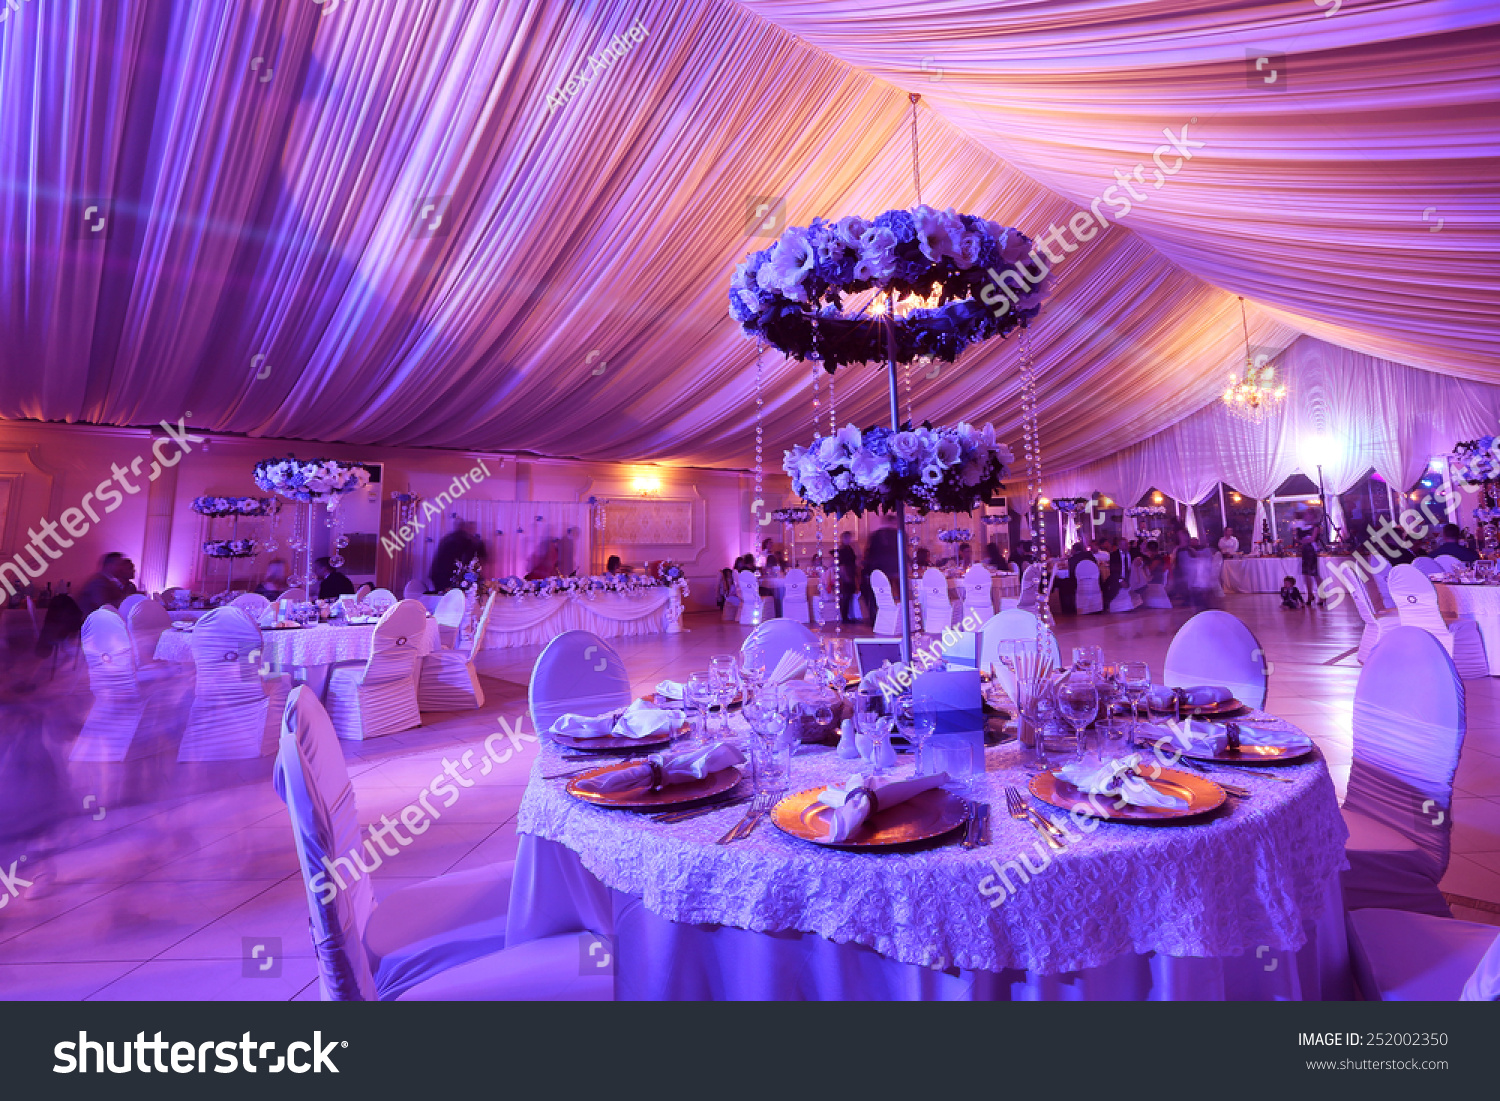 Wedding flowers decoration restaurant stock photo